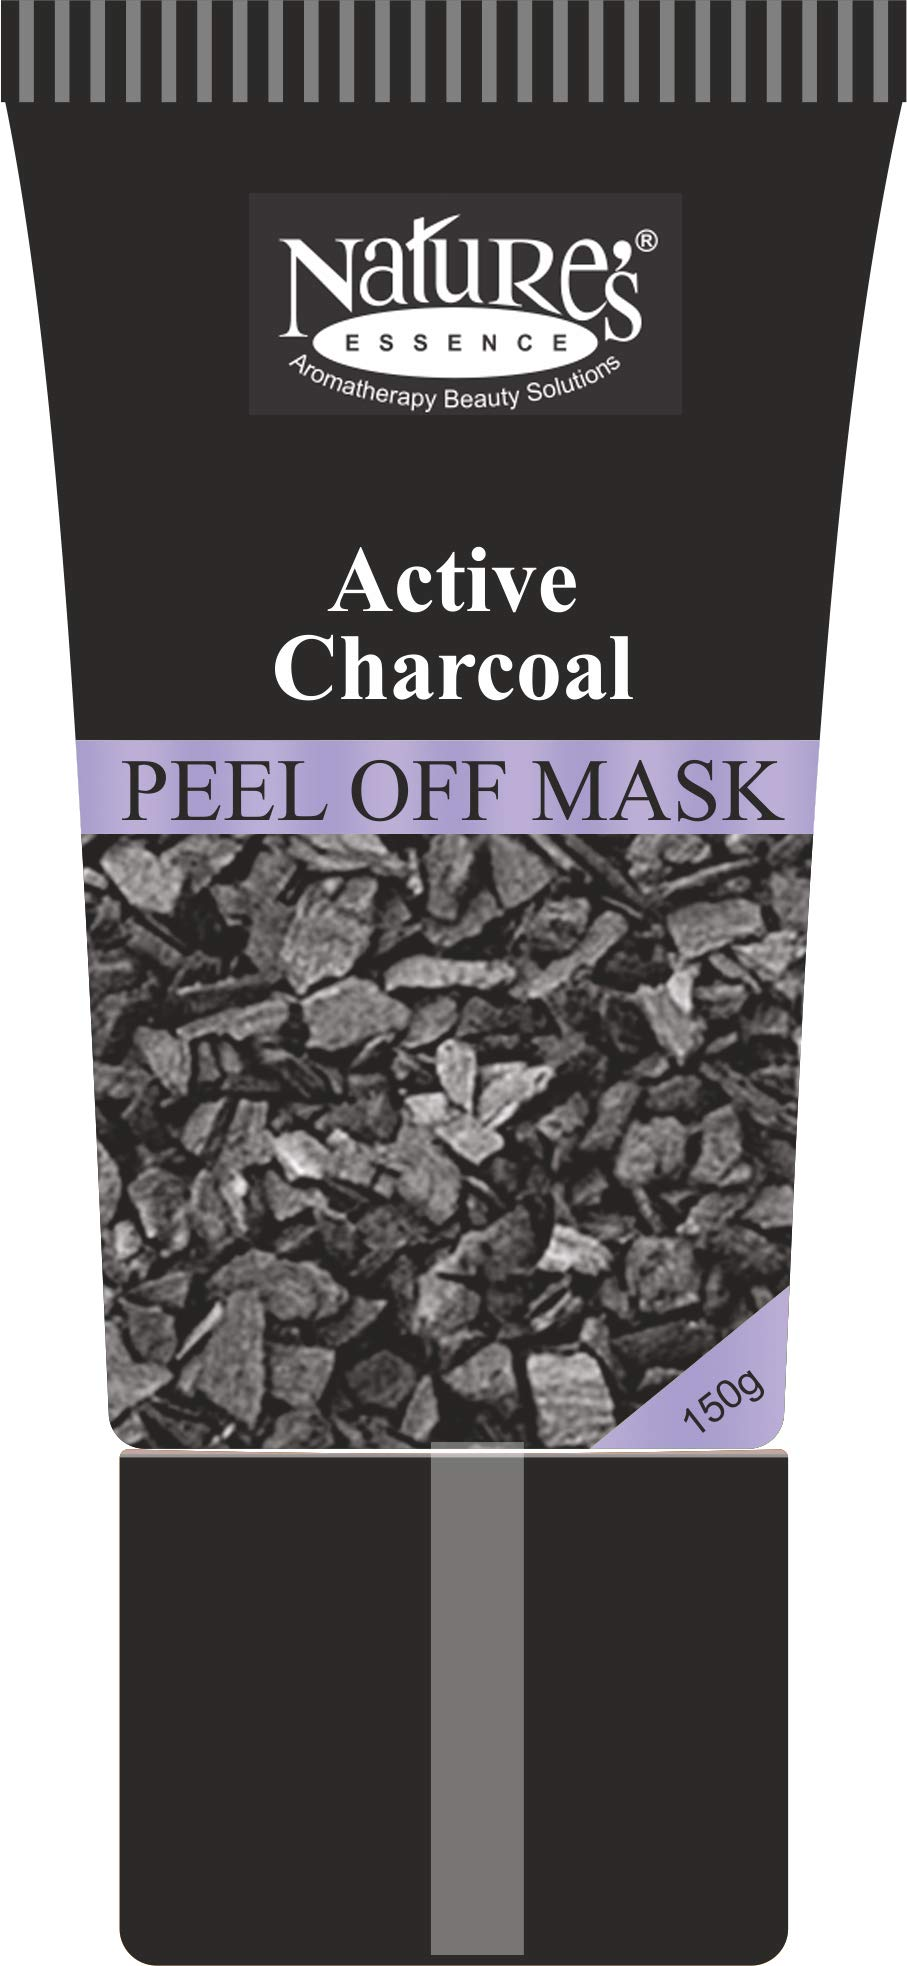 Nature's Essence Active Charcoal Peel Off Mask, 150 ml